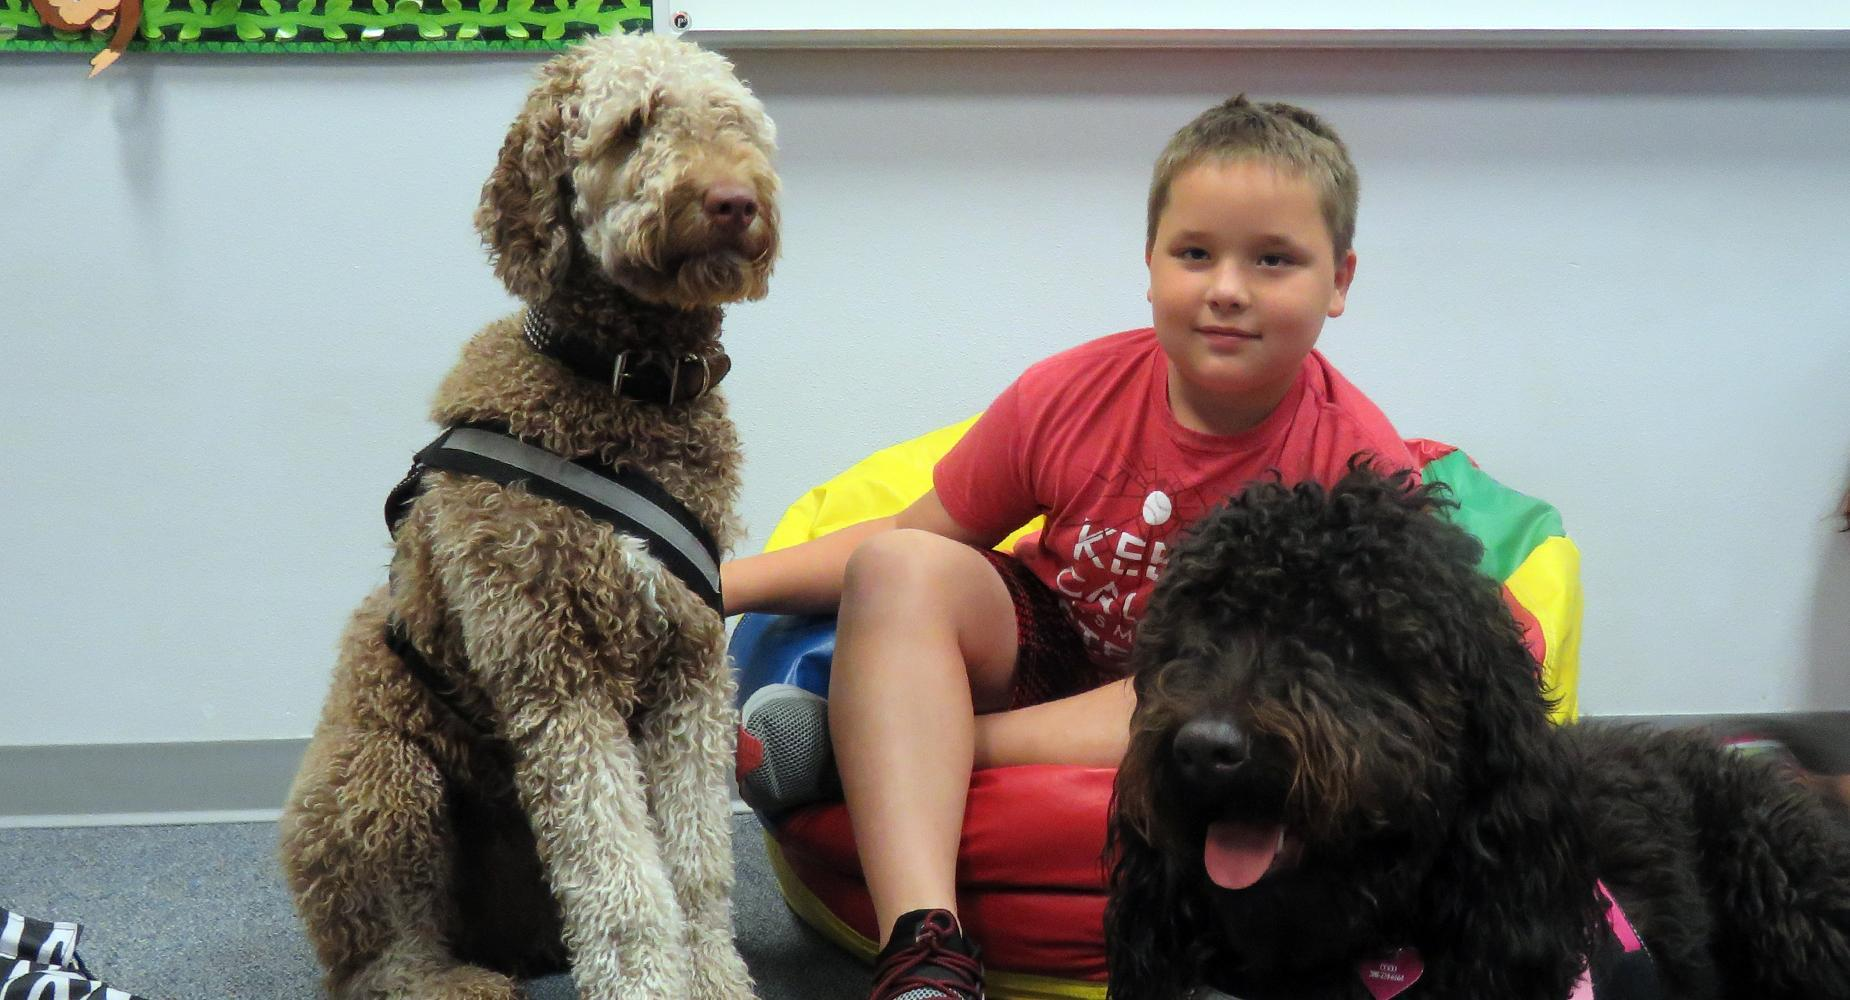 Boy in red shirt in beanbag chair, holding onto two service dogs.